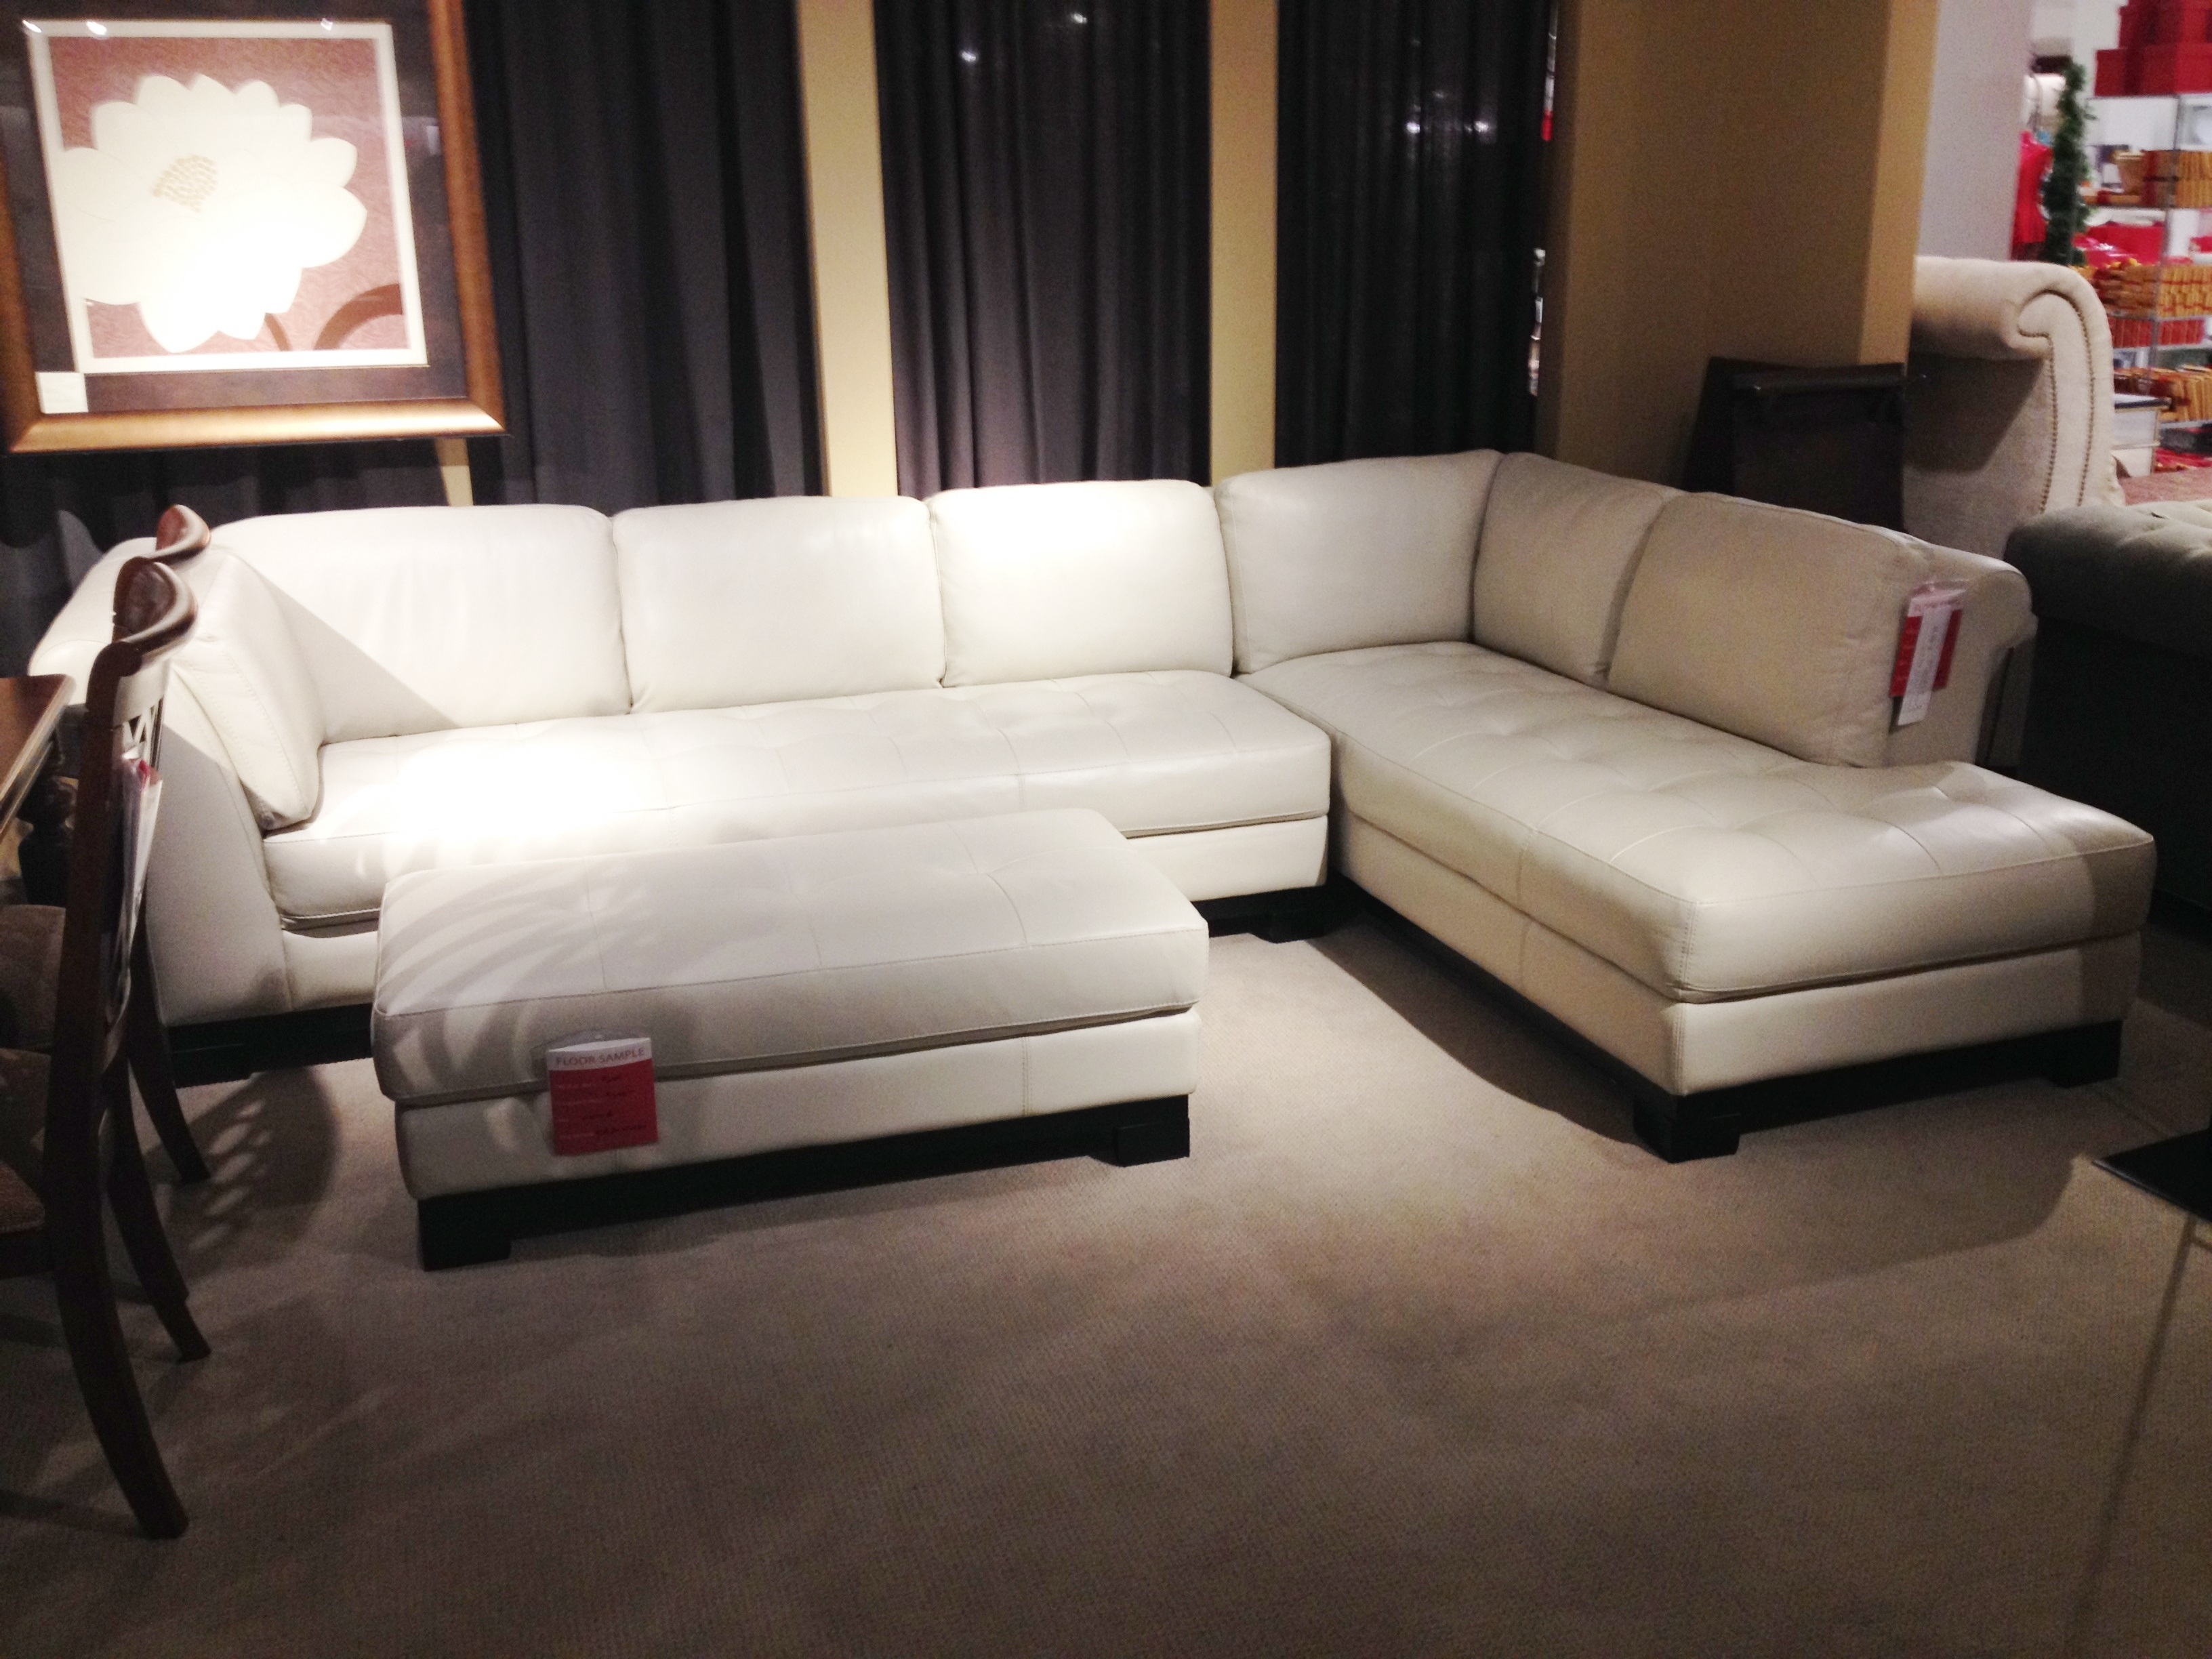 Great Value City Sectional Sofa 31 On Sofa Design Ideas With Value Regarding Value City Sectional Sofas (View 5 of 10)